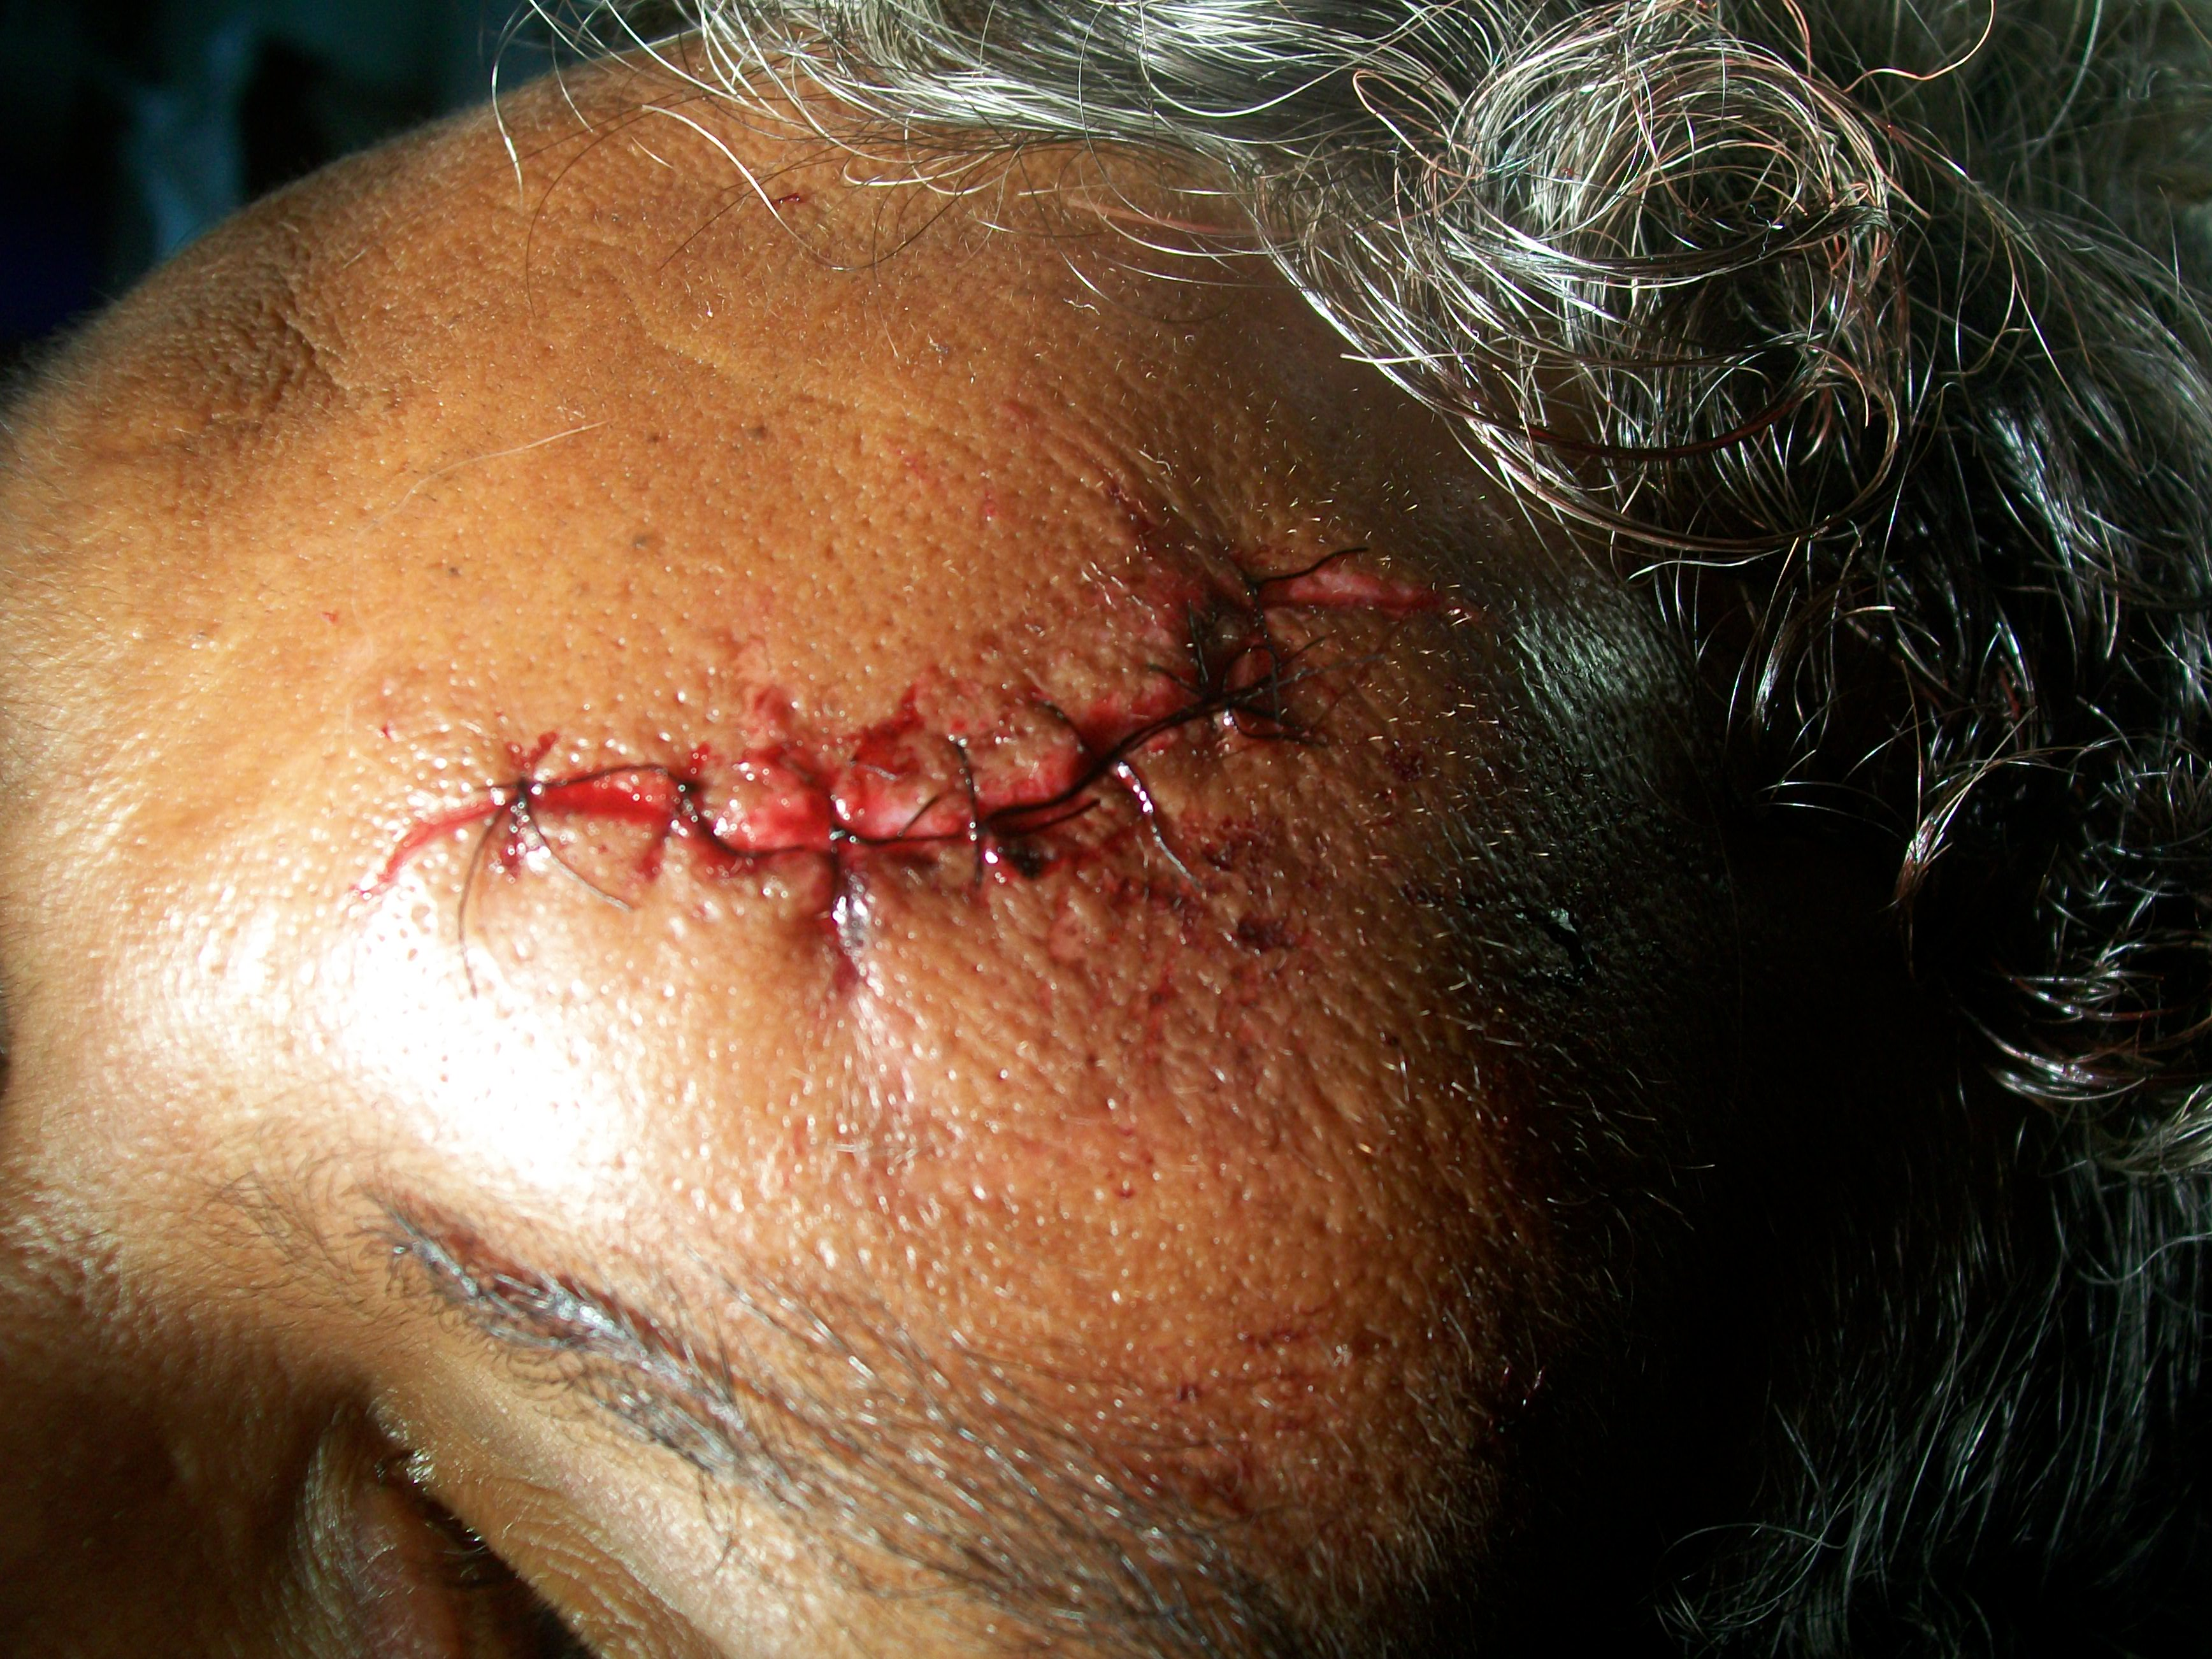 A person with an open head injury